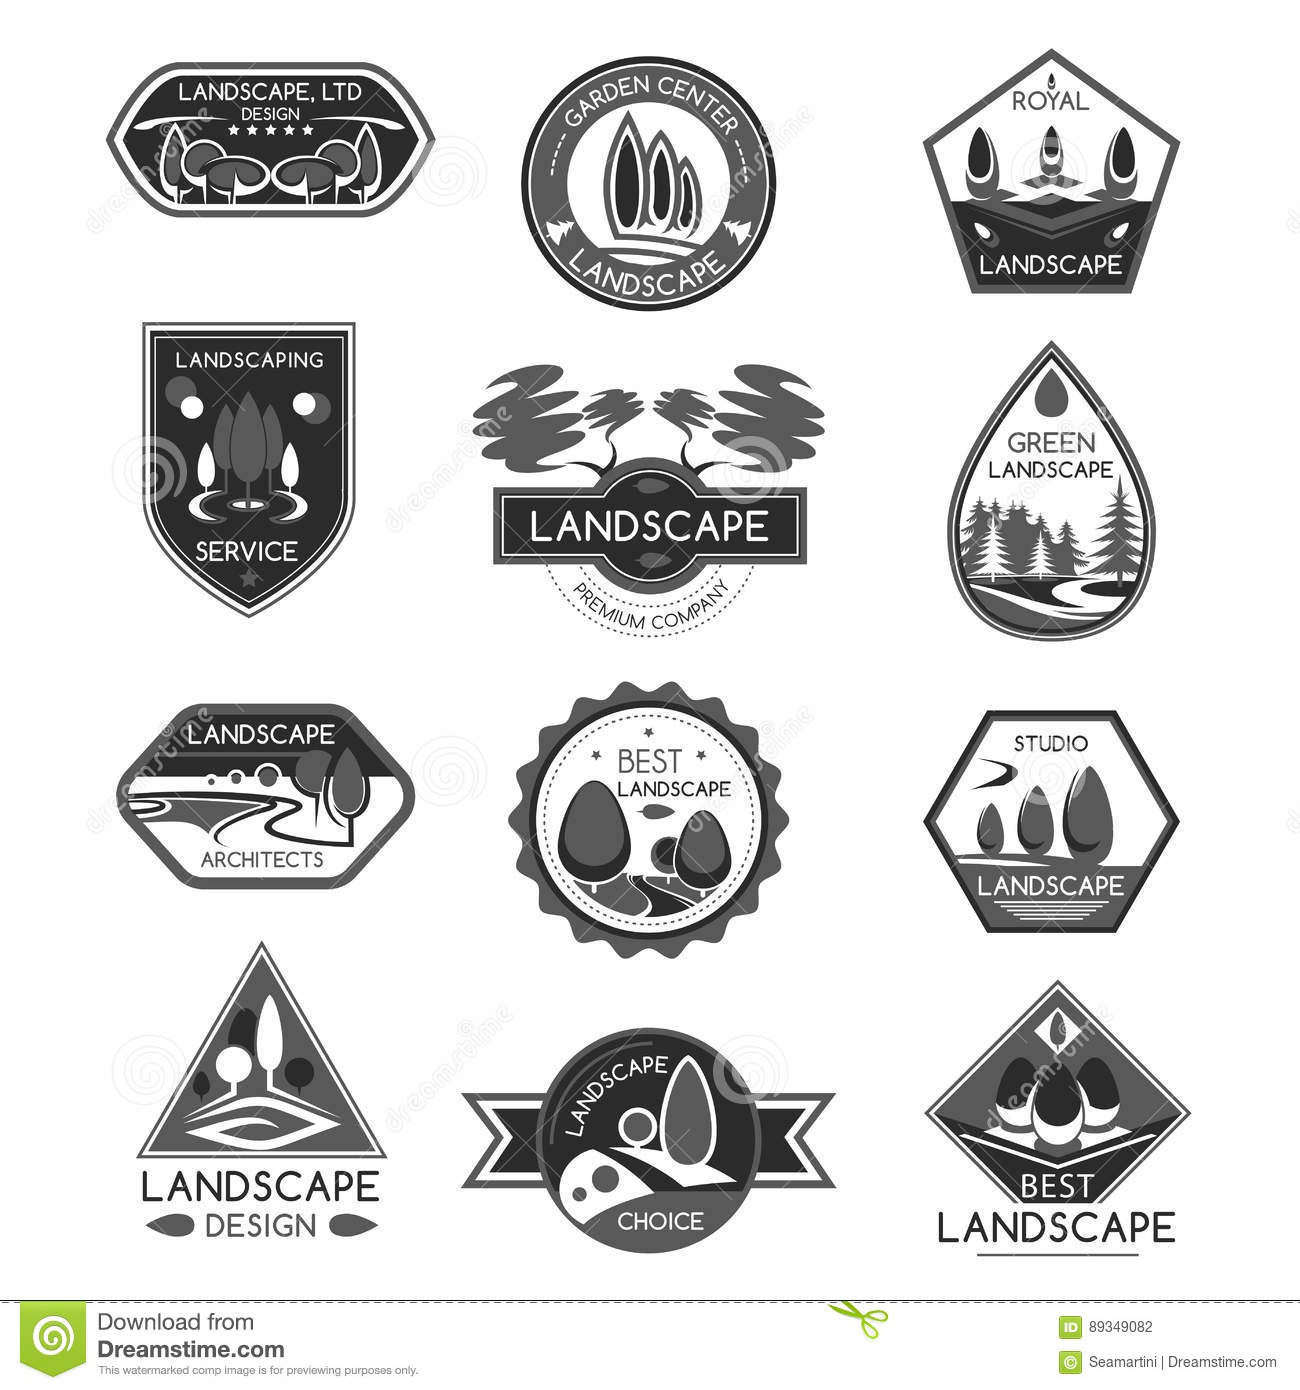 Landscape Design Company Vector Icons Set Stock Vector